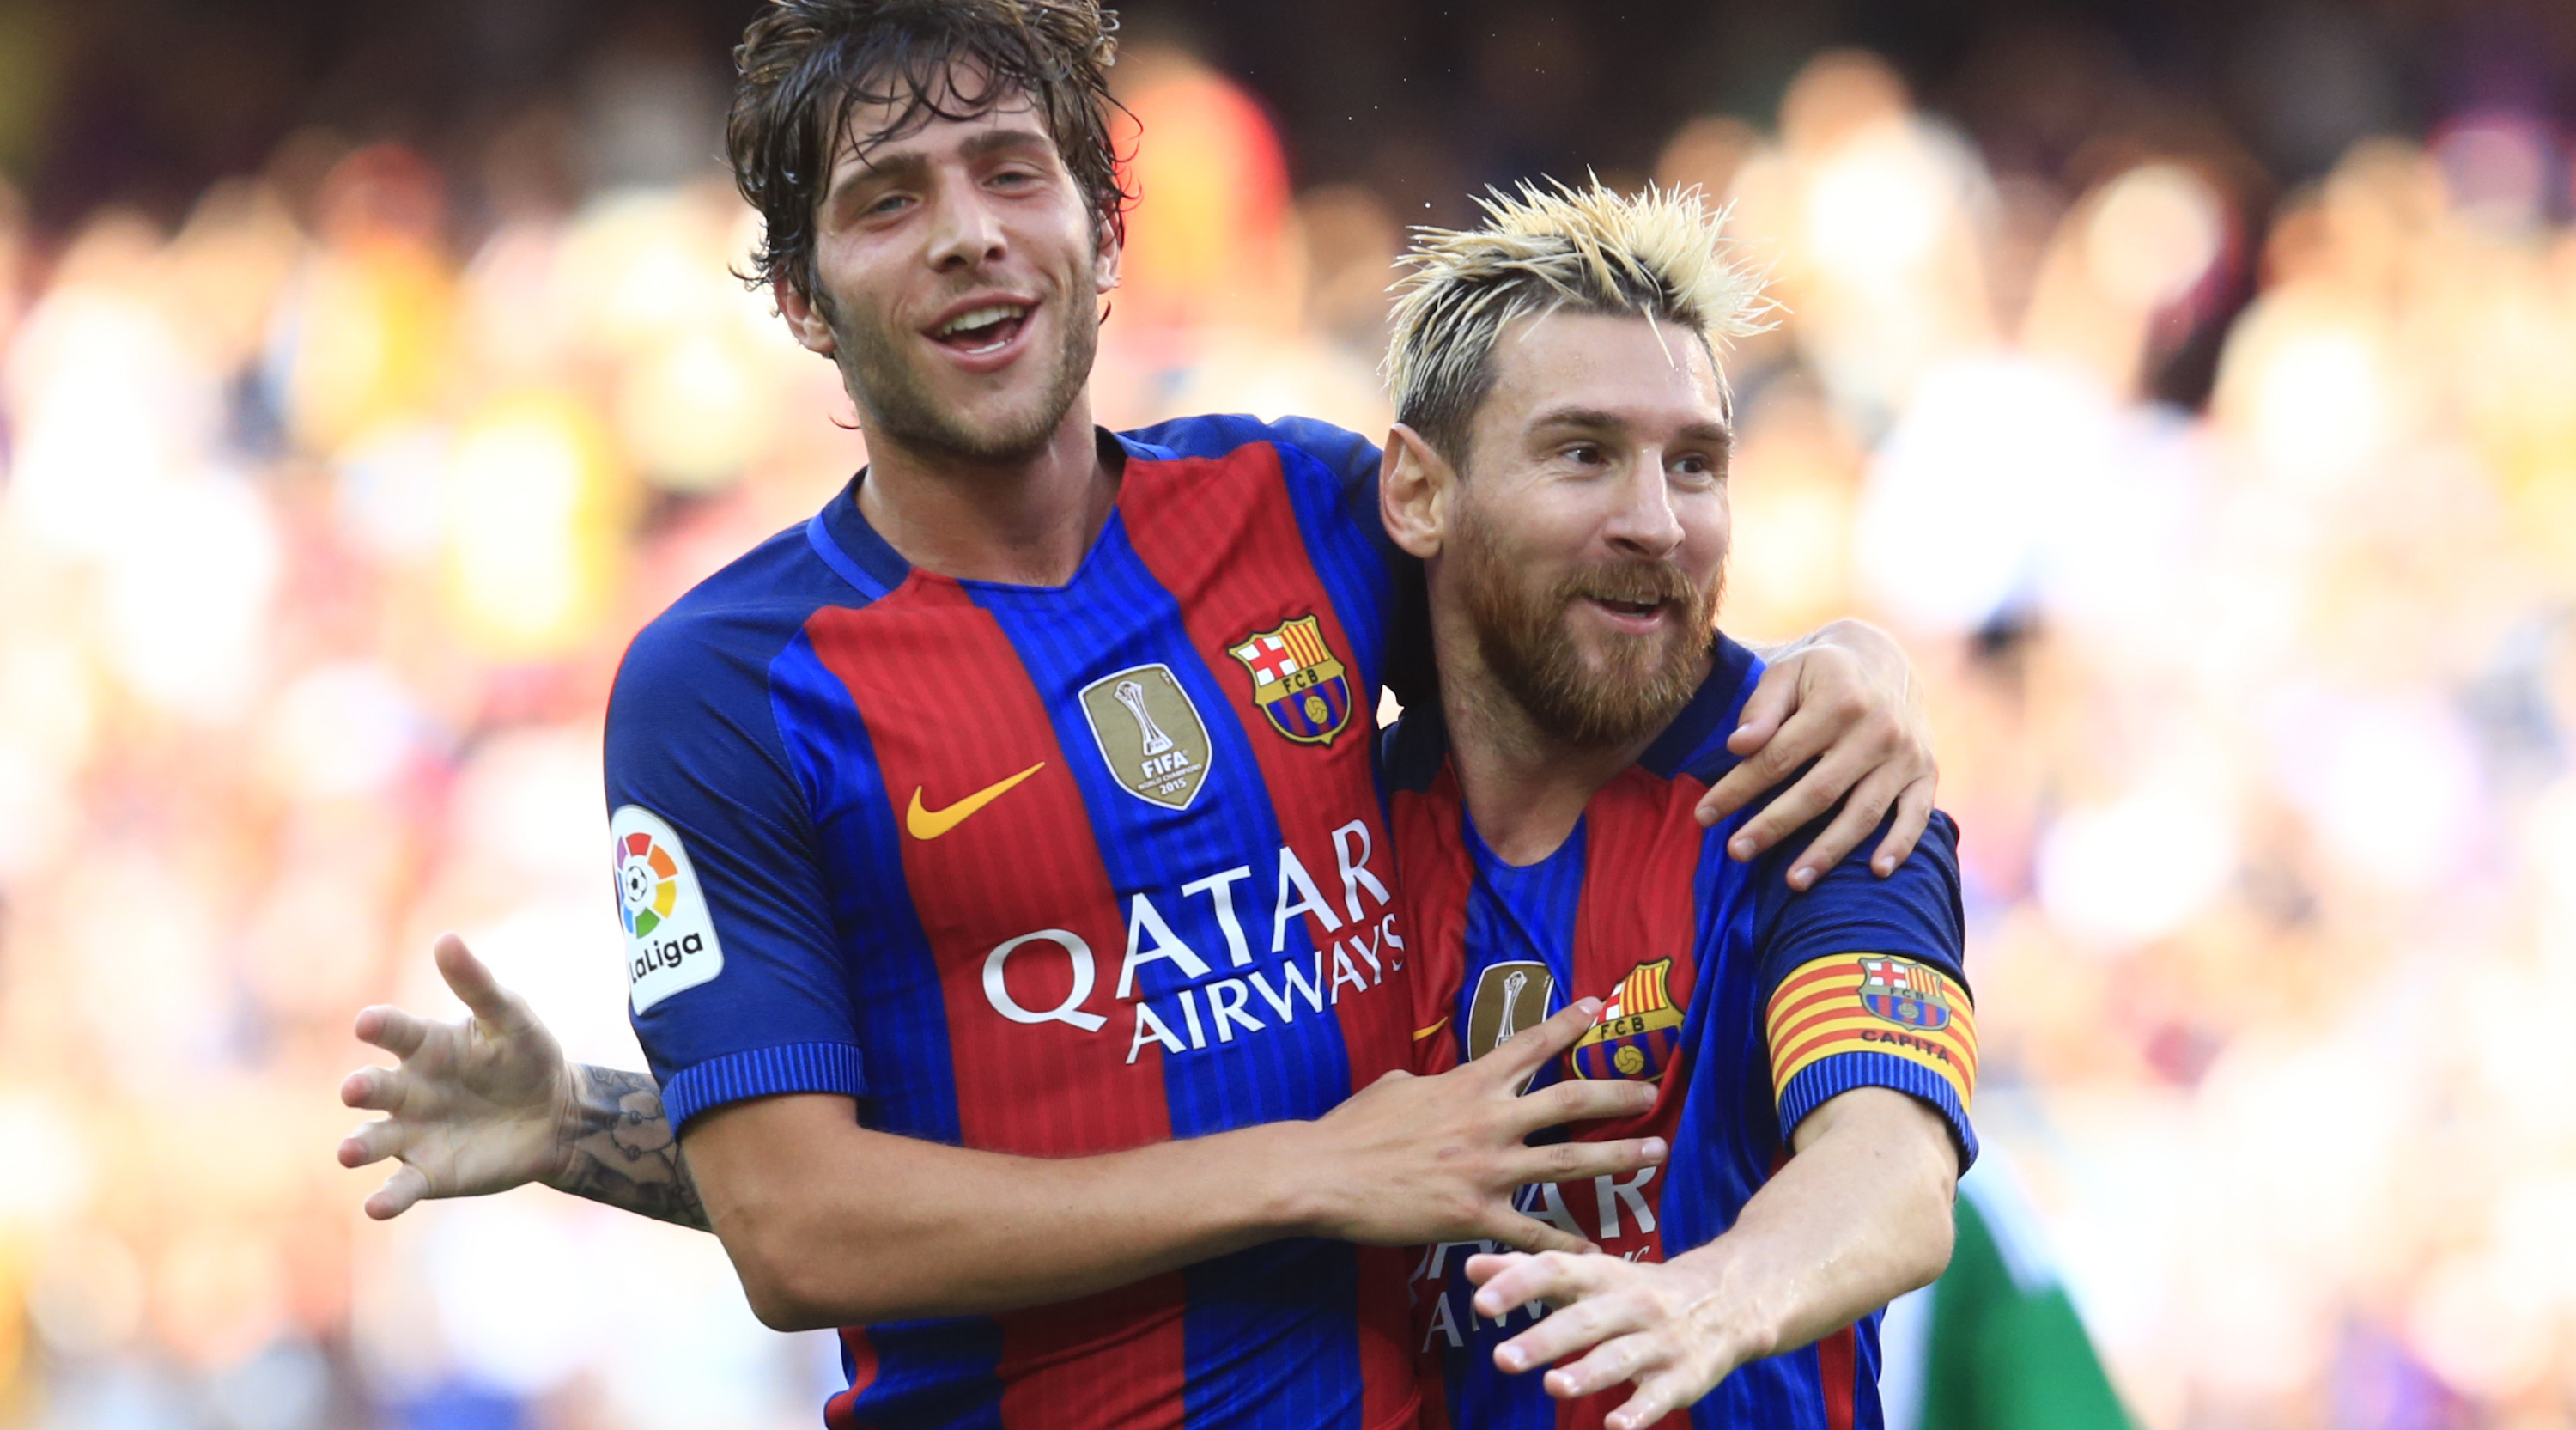 Barcelona's Argentinian forward Lionel Messi (R) celebrates after scoring with Barcelona's midfielder Sergi Roberto during the Spanish league football match FC Barcelona vs Real Betis Balompie at the Camp Nou stadium in Barcelona on August 20, 2016. / AFP / PAU BARRENA (Photo credit should read PAU BARRENA/AFP/Getty Images)